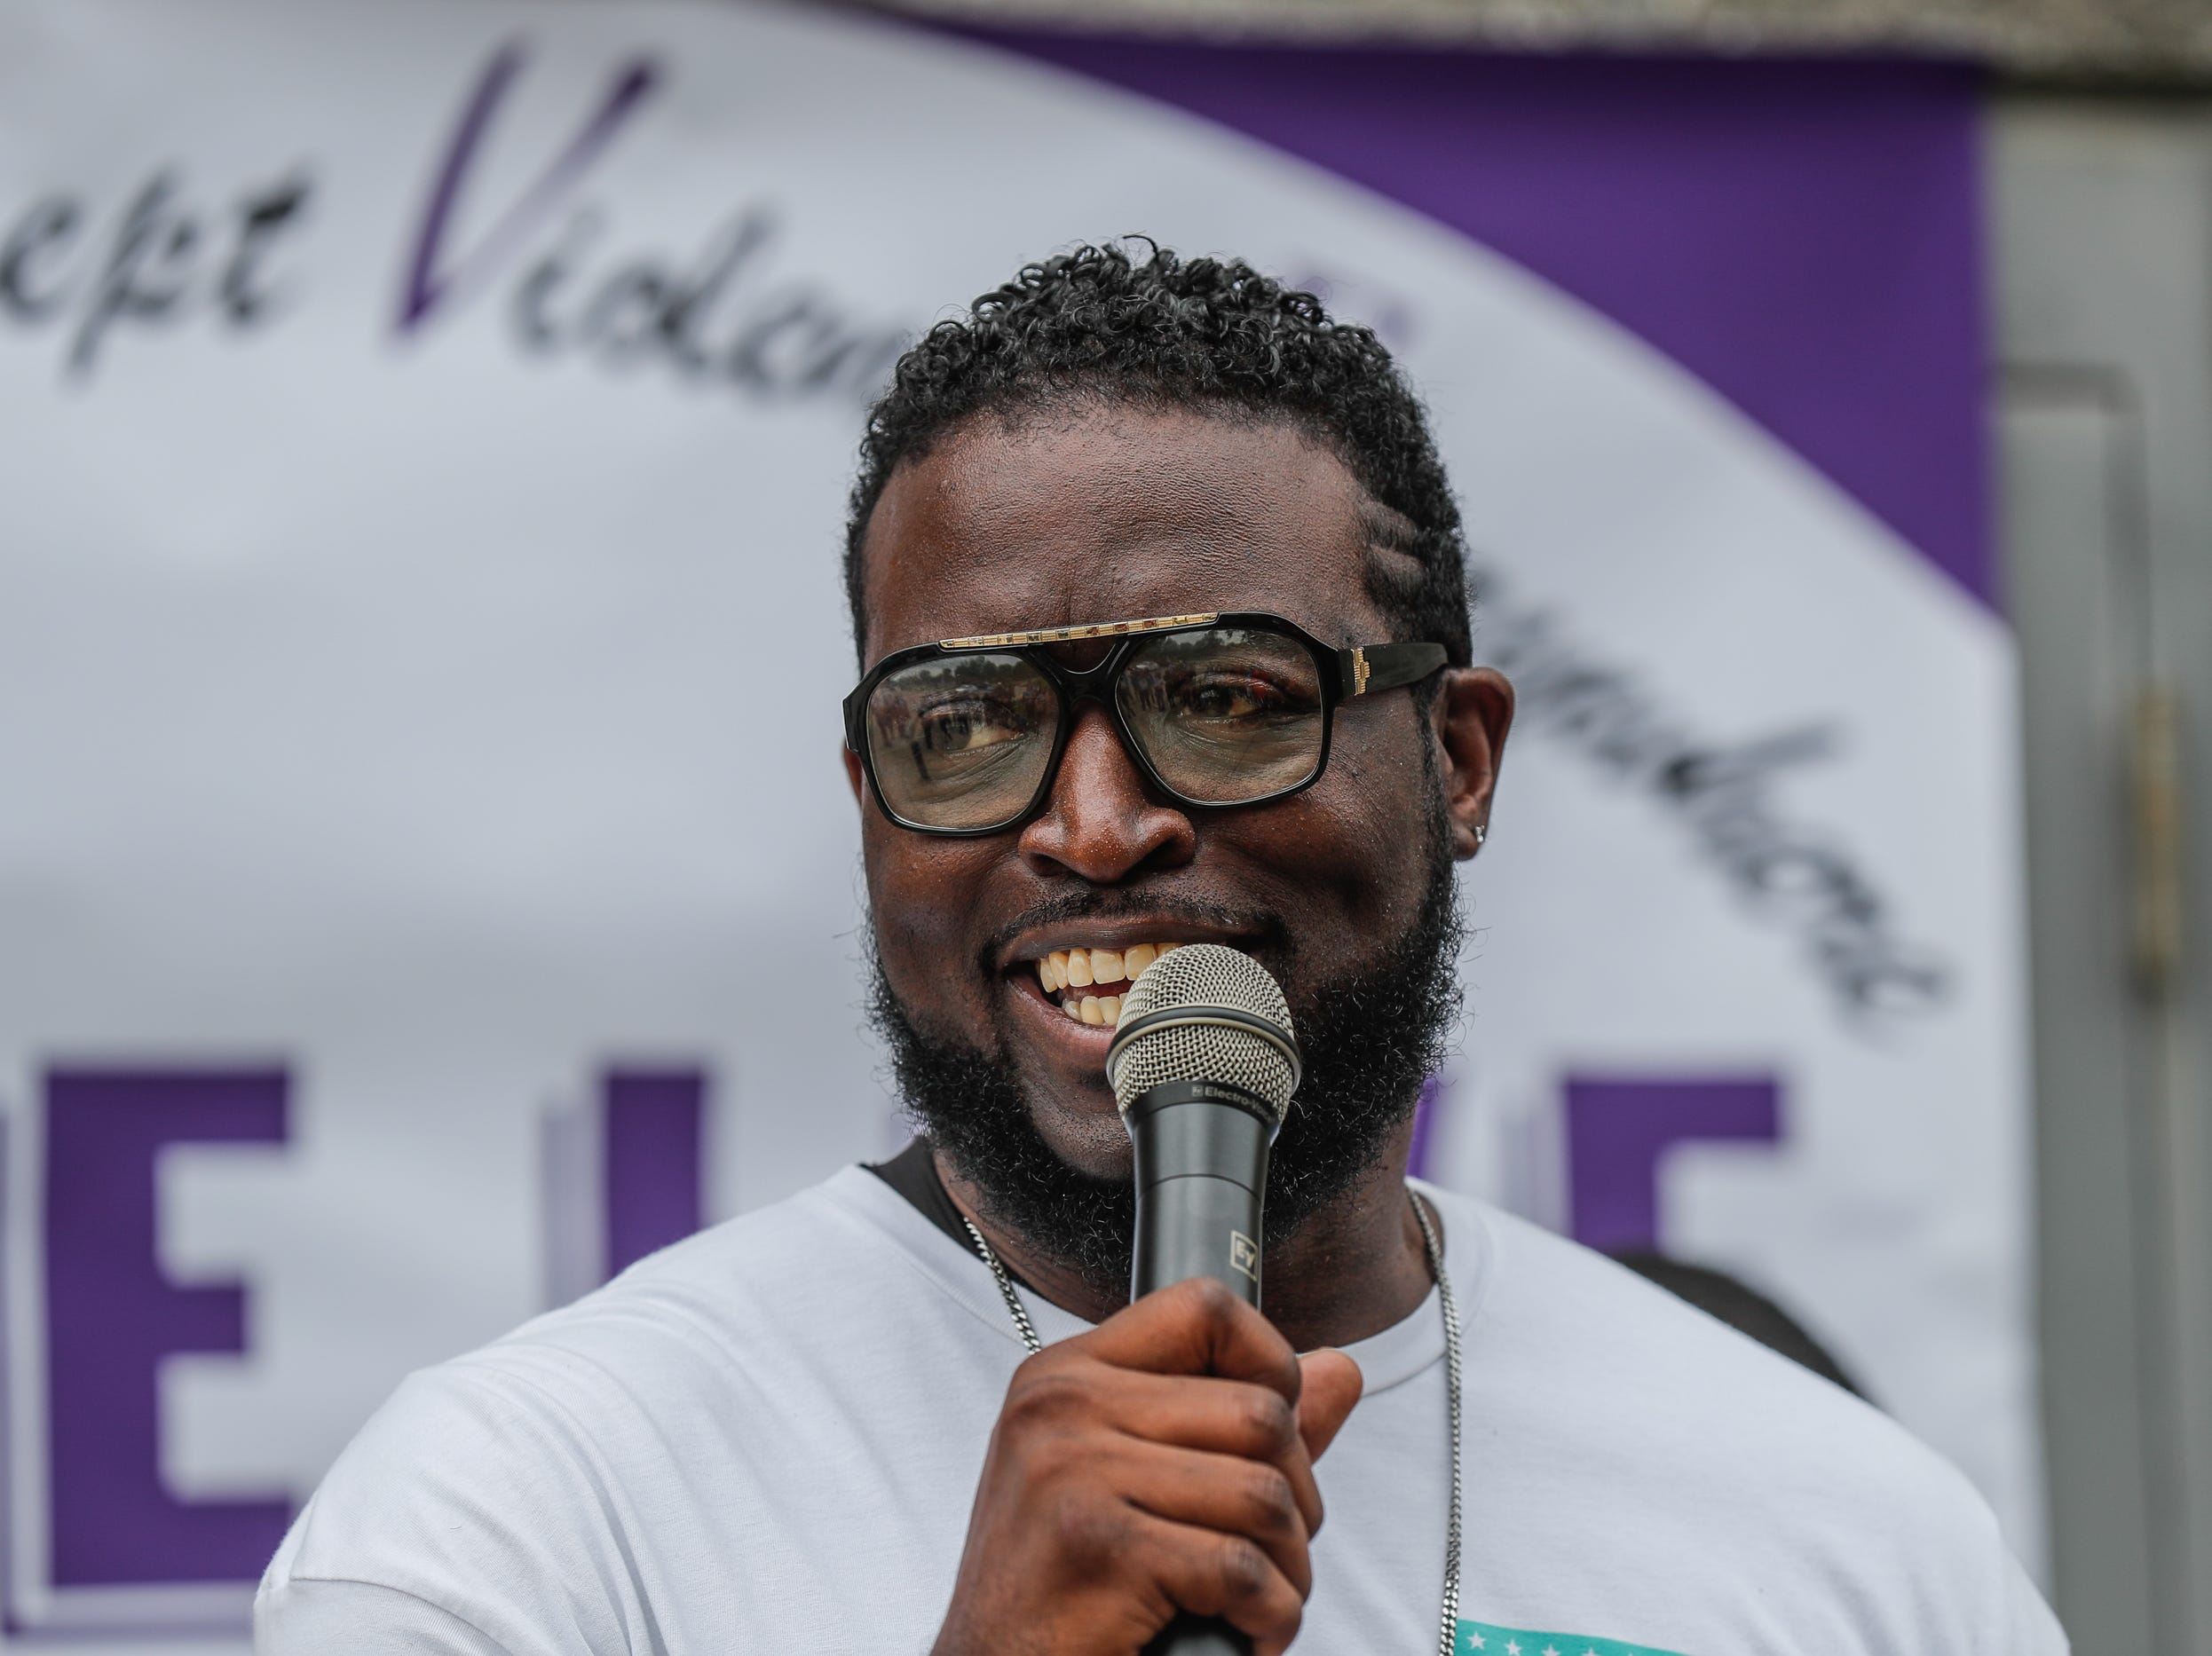 Keenan Young speaks during the second annual 'We Live' Peace Walk and community day to end youth violence at Washington Park on Saturday, Aug. 11, 2018. 'We Live,' which stands for 'Linked To Intercept Violence' was started by students from Warren Central High School in Indianapolis.